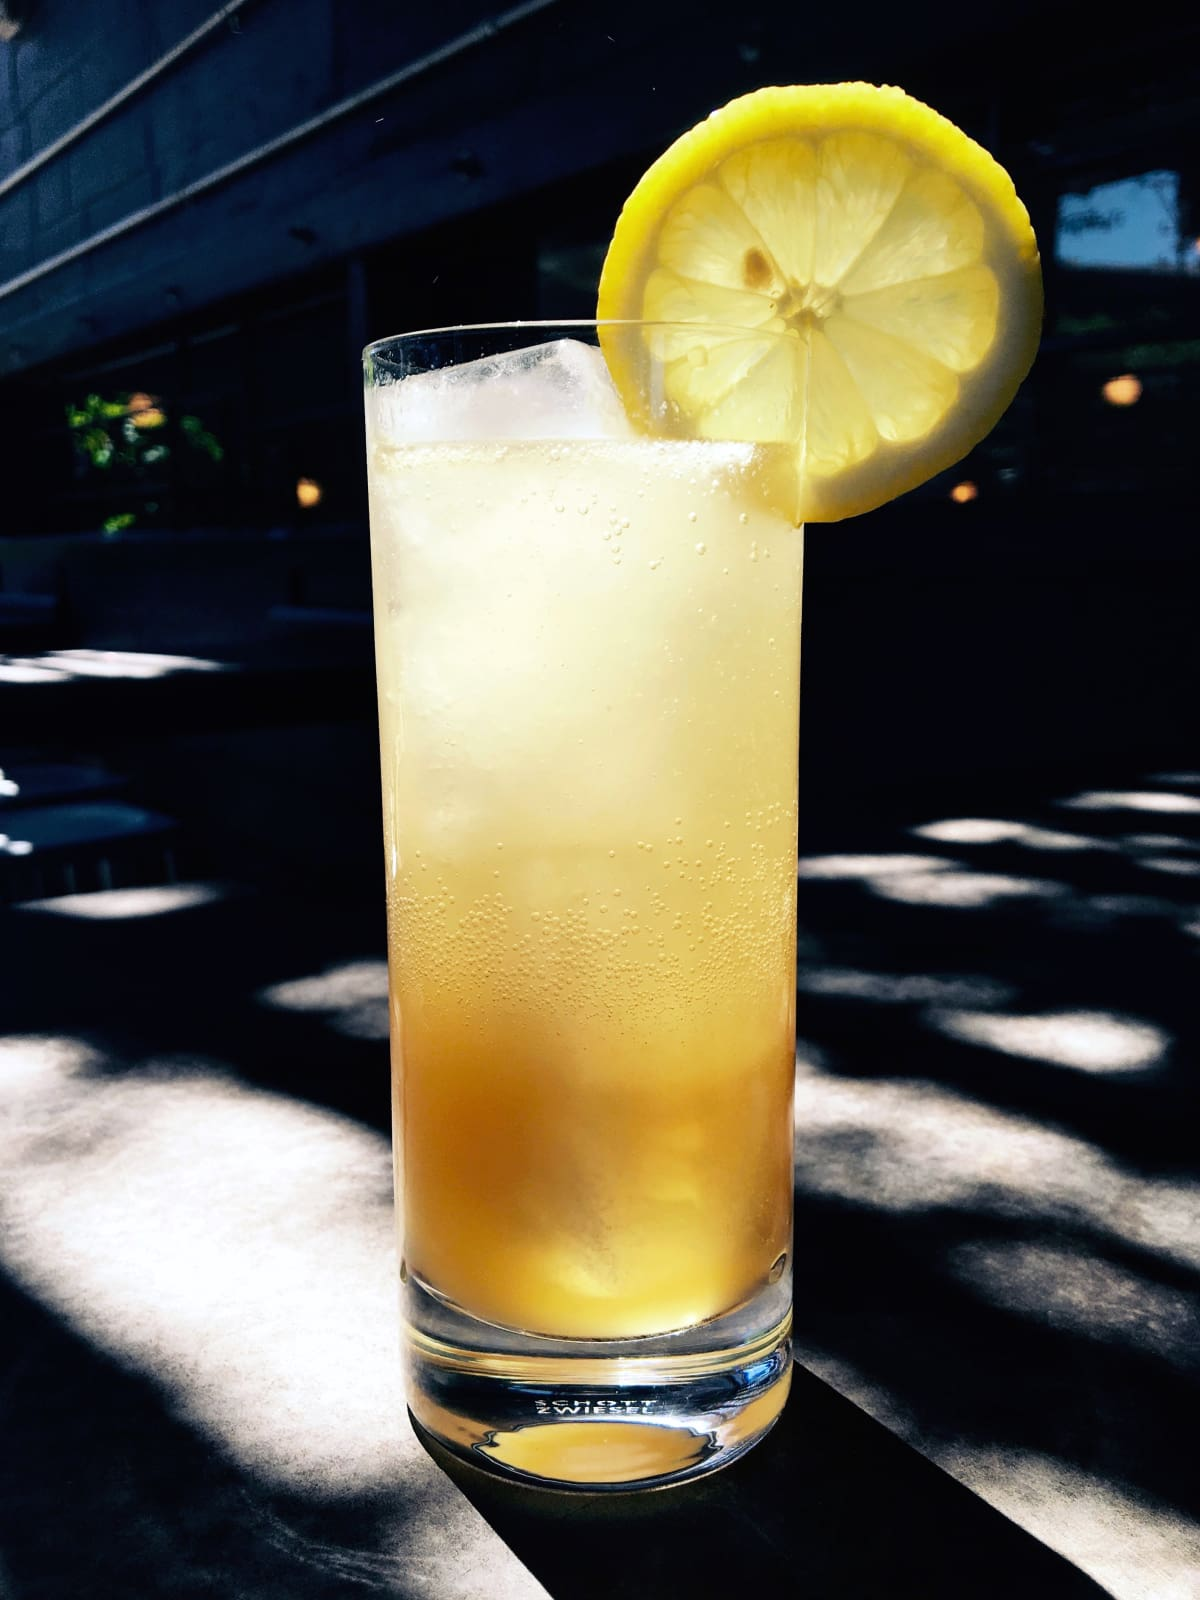 Houston, The Pass and Provisions, Equipo Milano lemonade, August 2017